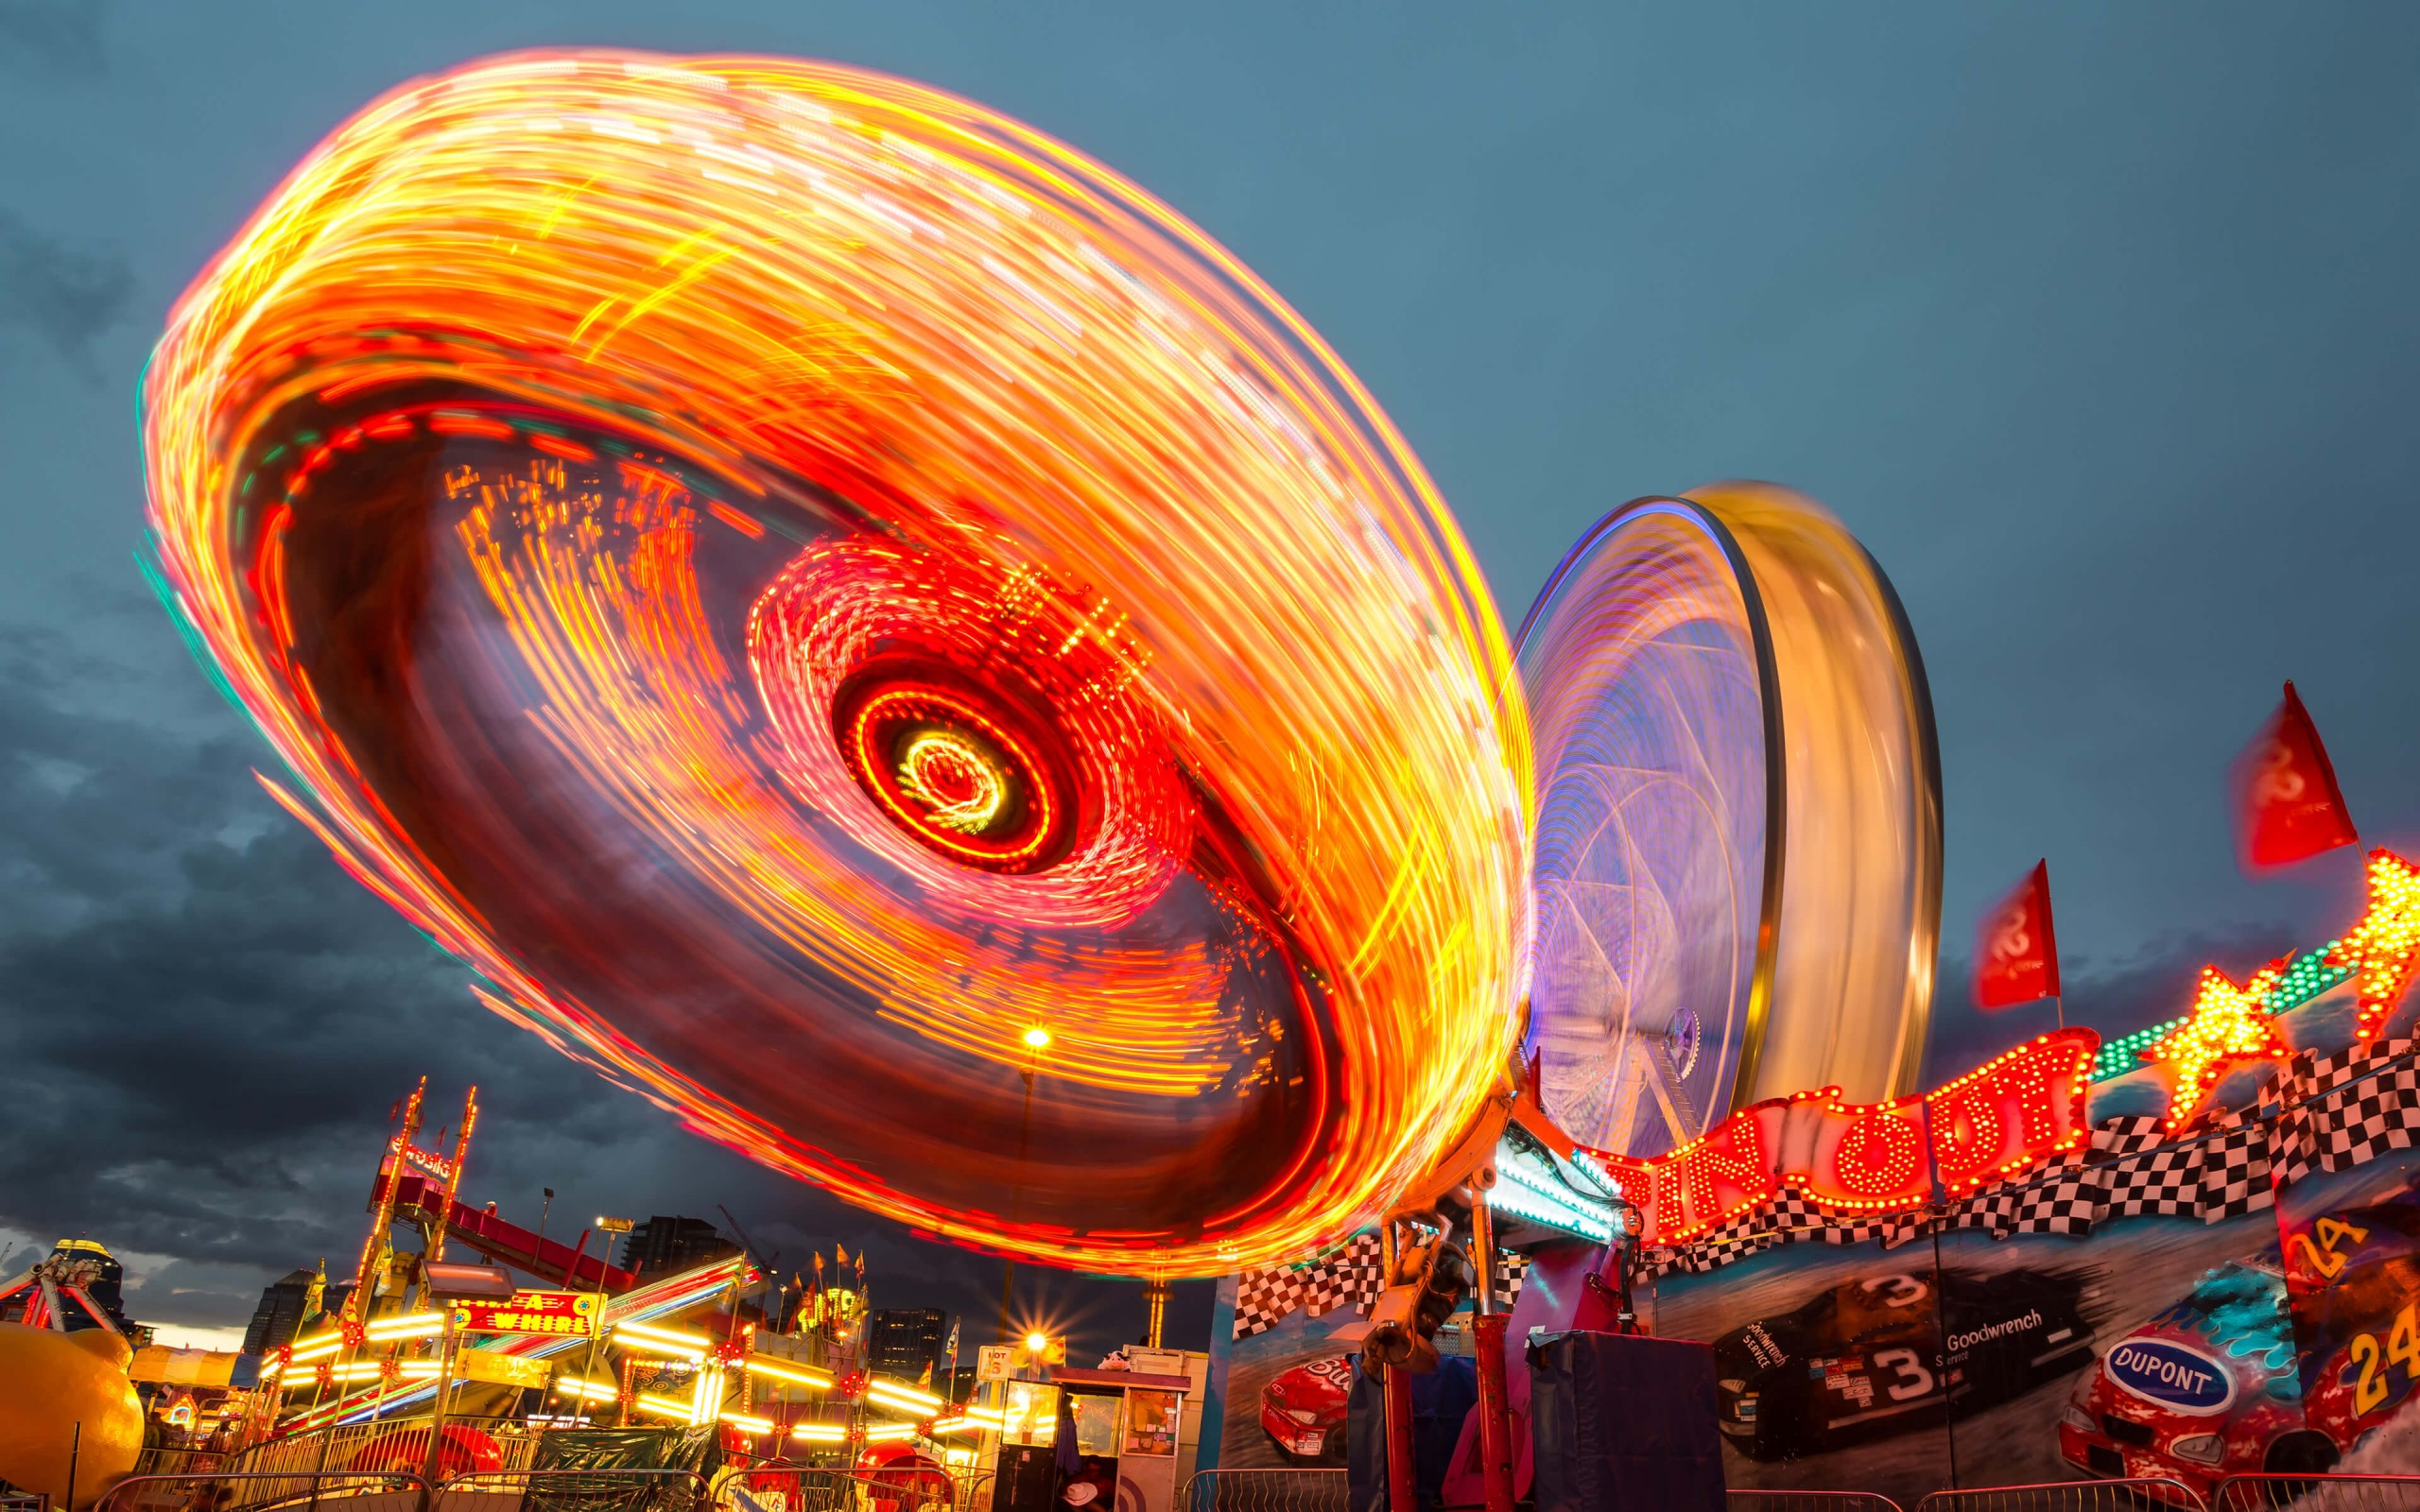 Calgary Stampede Lights Wallpaper for Desktop 2560 x 1600 2560x1600